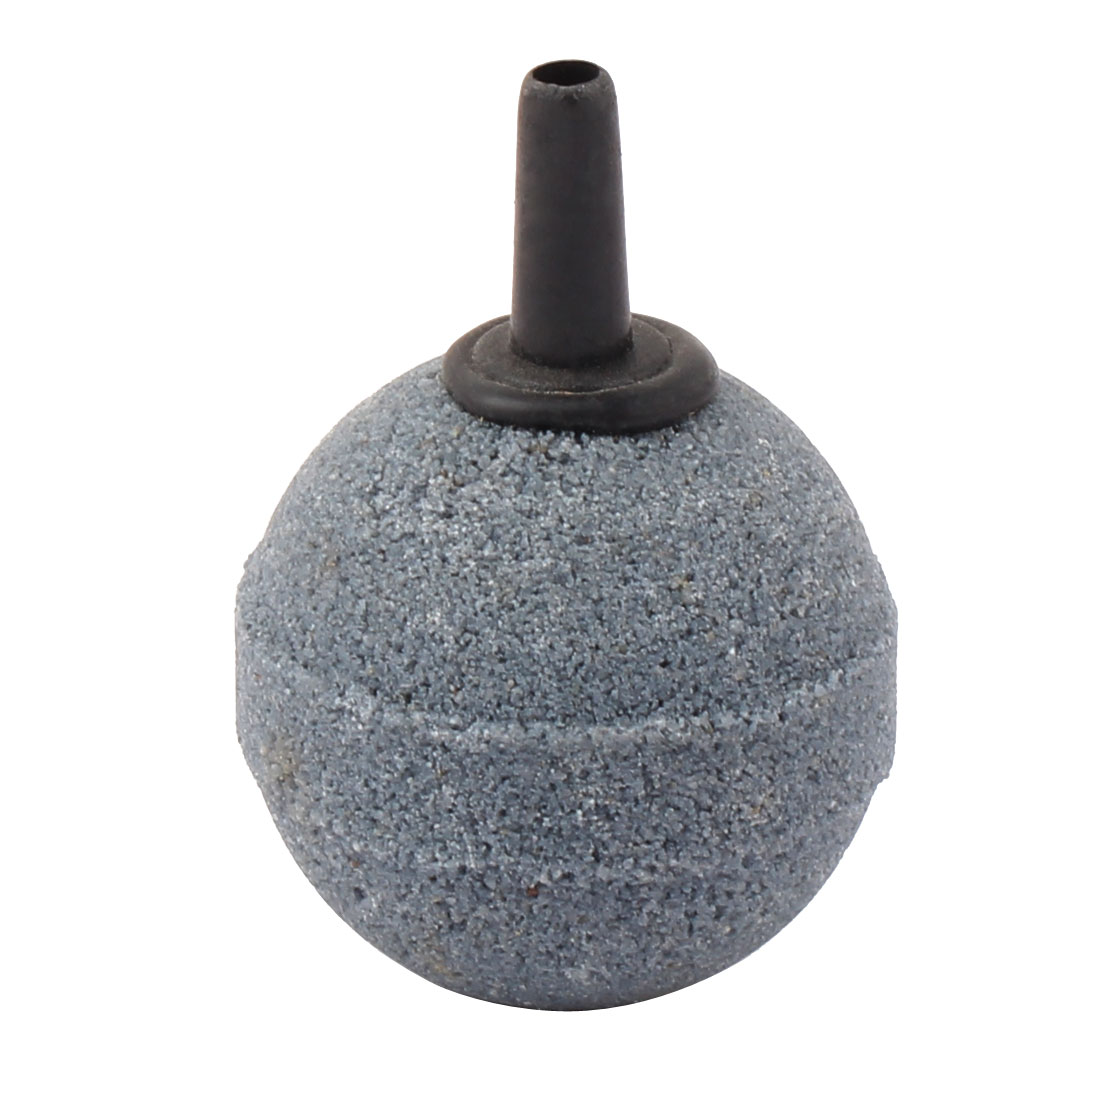 Aquarium Hydroponic Fish Tank Air Stone Ball Airstone